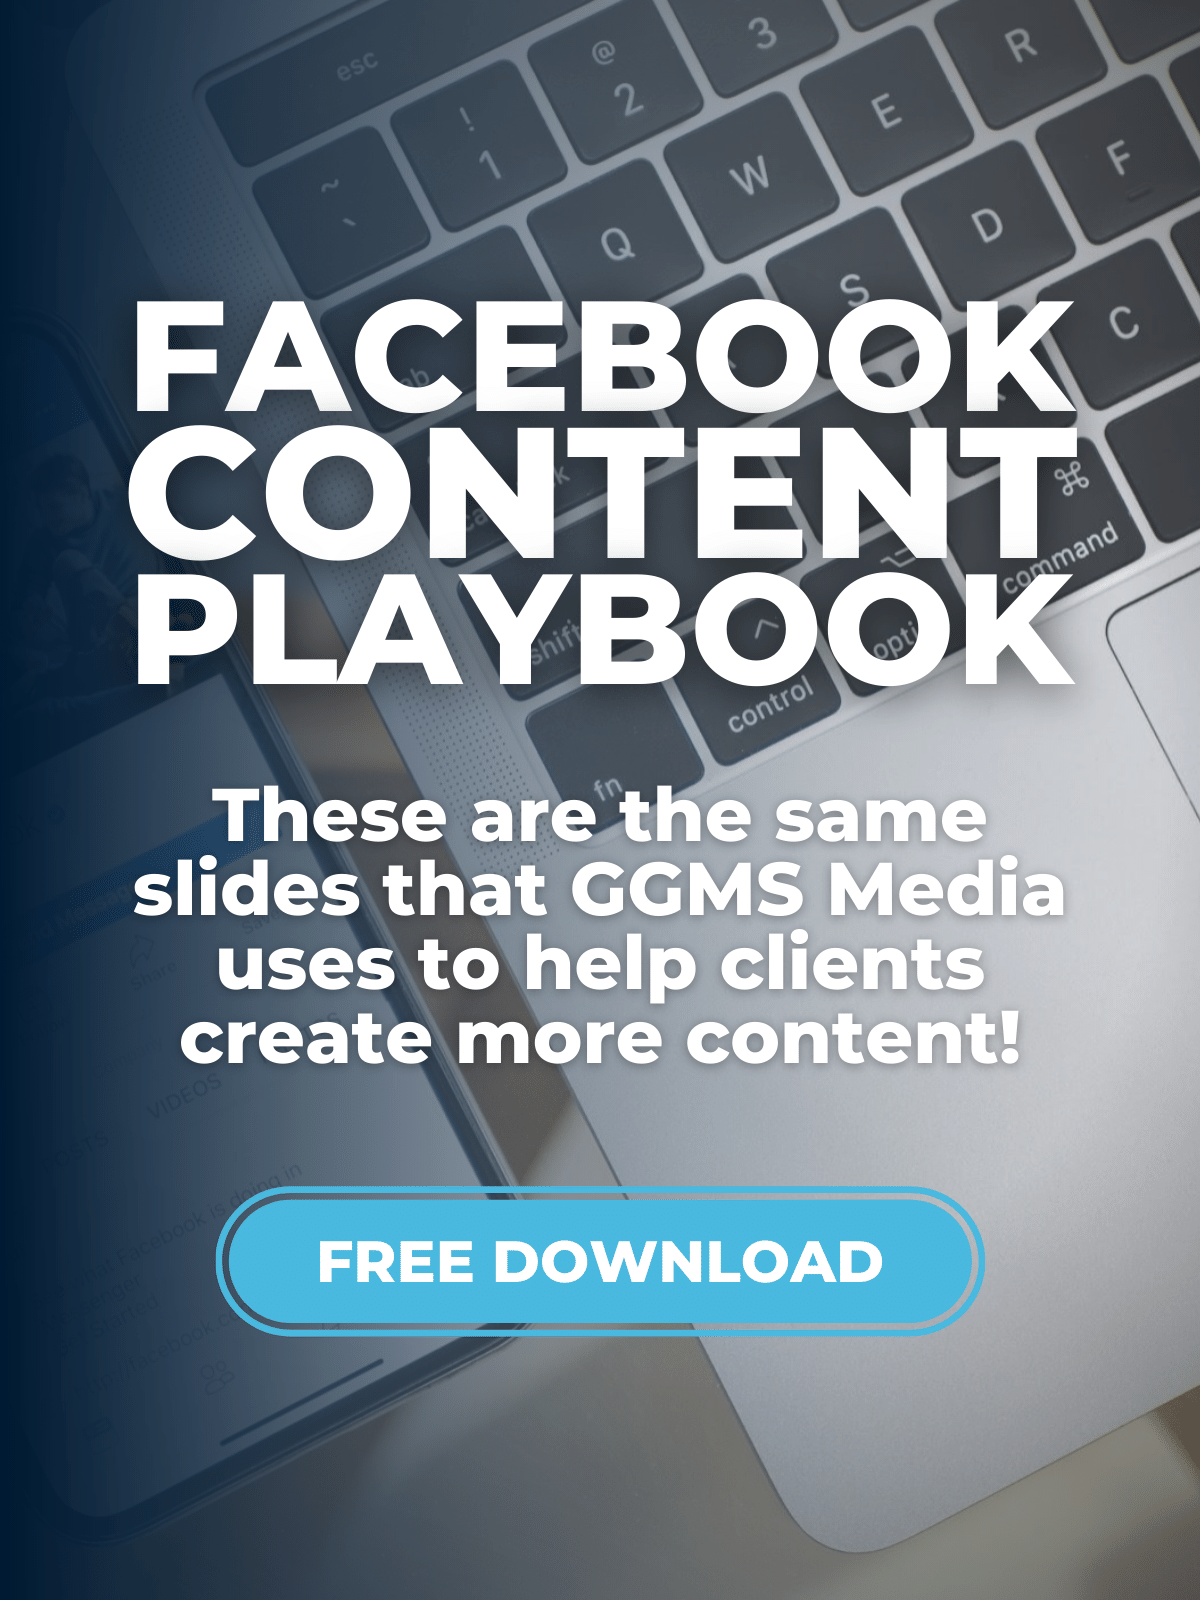 Facebook Content Playbook | GGMS Coaching & GGMS Media